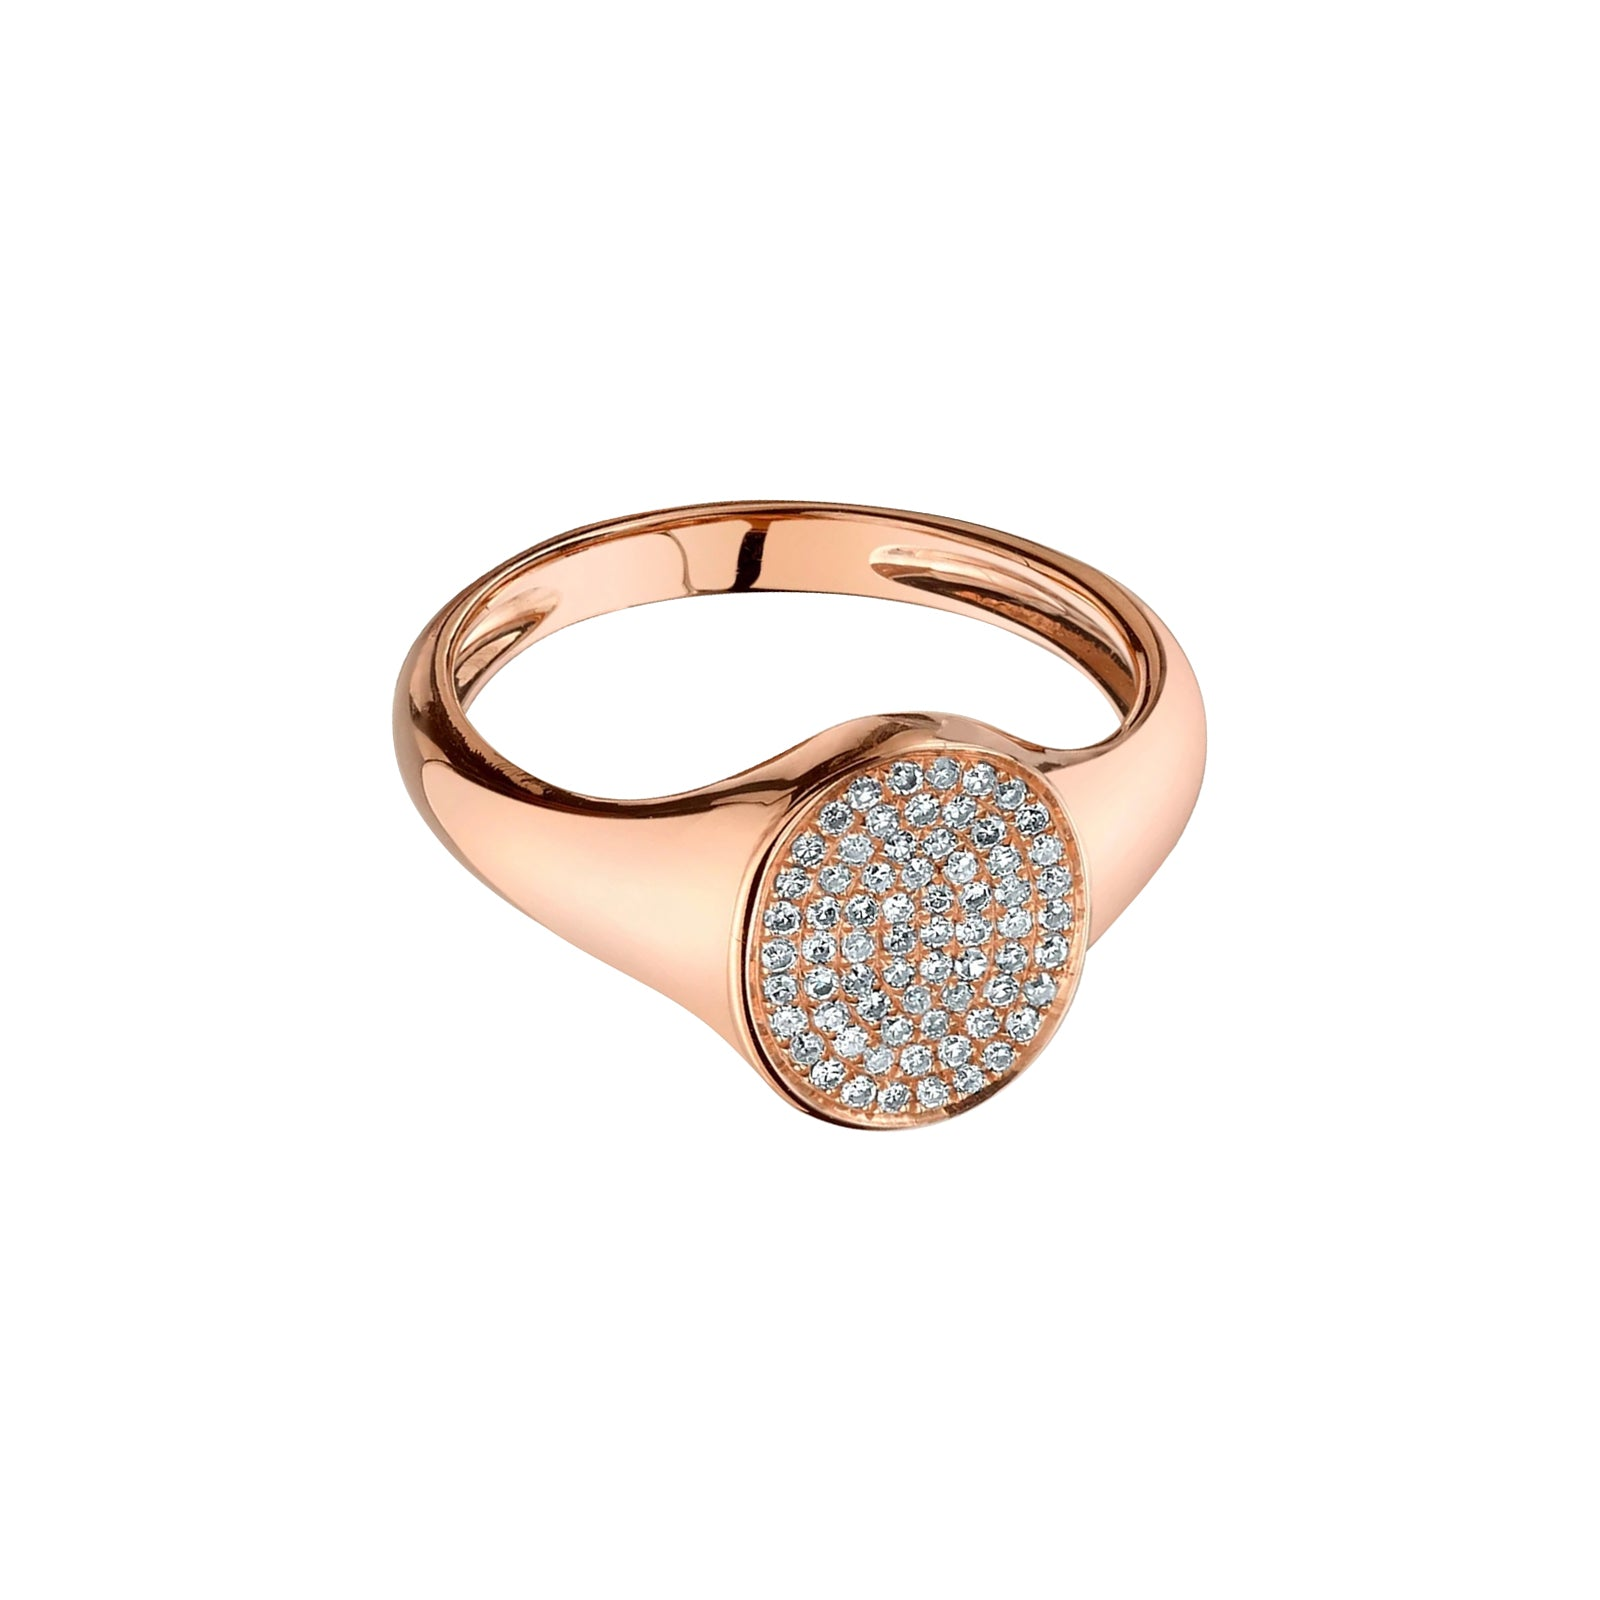 Gabriela Artigas & Company Signet Disc Diamond Ring - Rose Gold - Rings - Broken English Jewelry